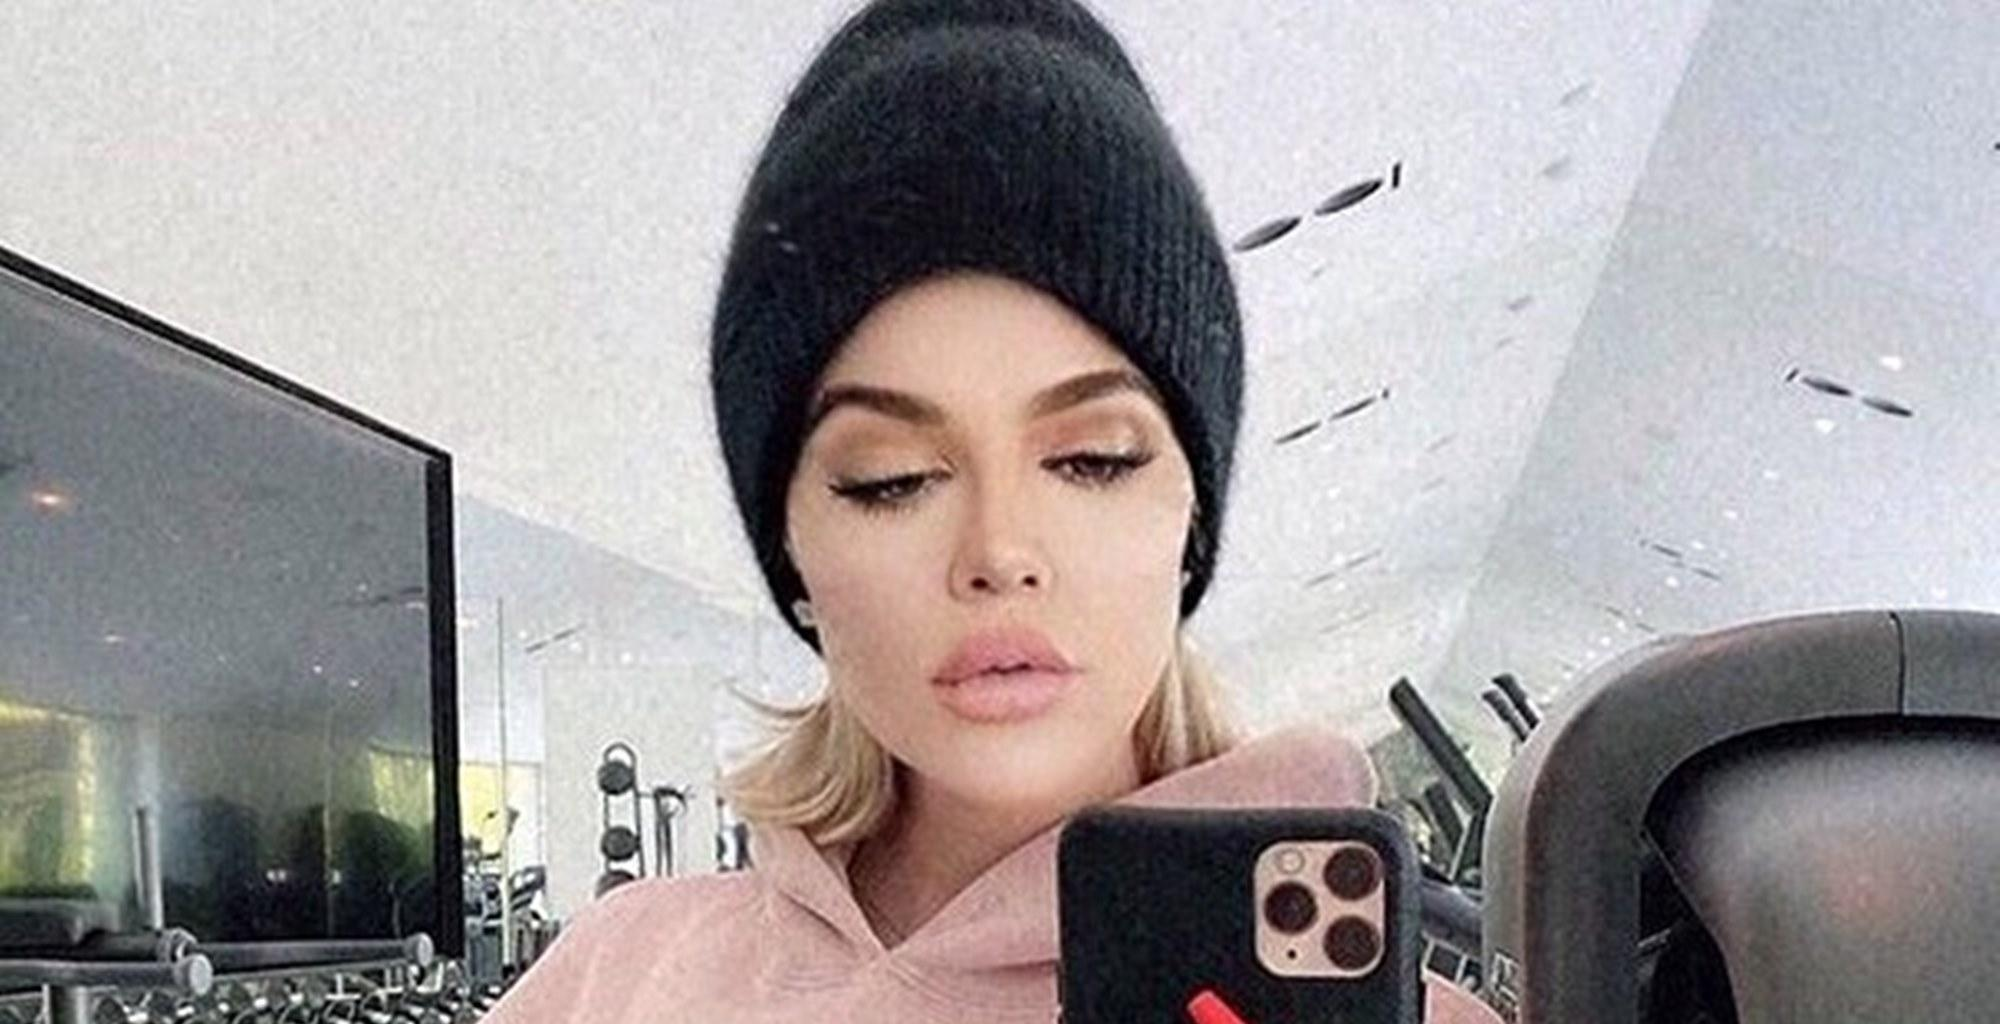 Khloe Kardashian Shares Her Beast Mode Workout Photos, Critics Laugh At Them For This Reason